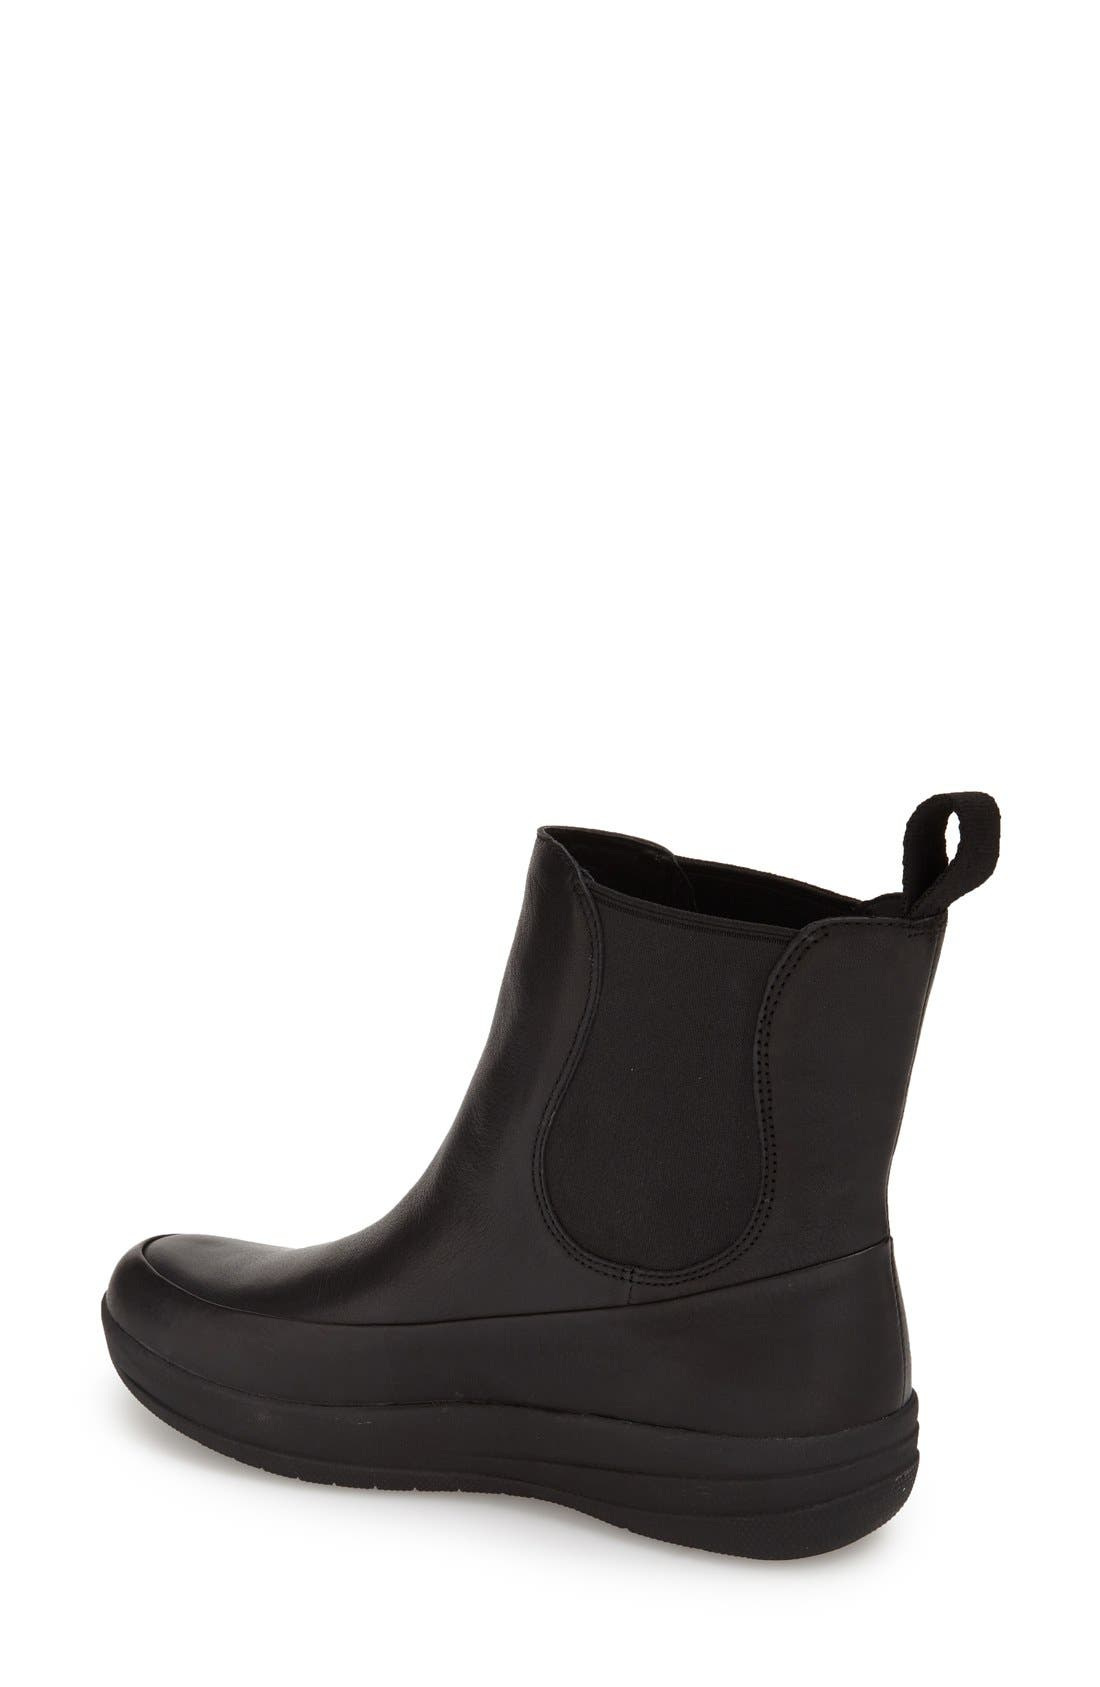 'Lux' Chelsea Boot,                             Alternate thumbnail 2, color,                             009